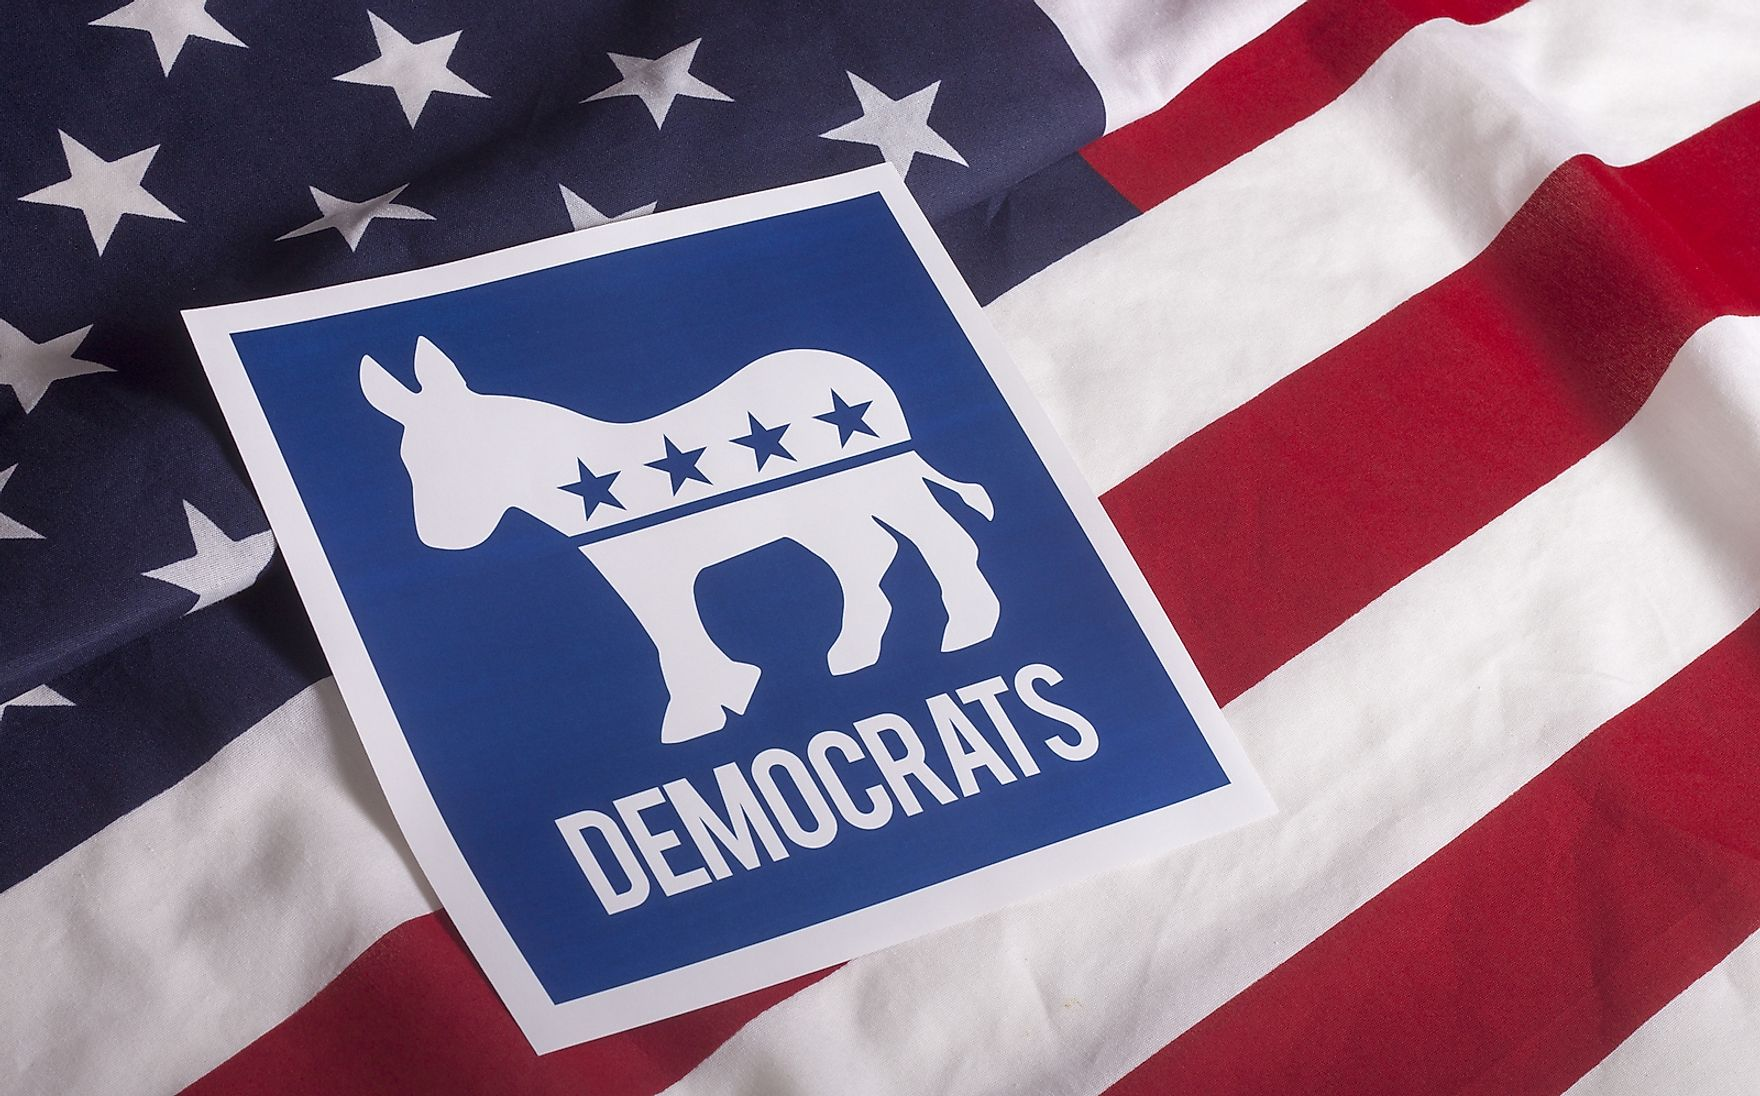 The symbol of the democrats, the donkey.